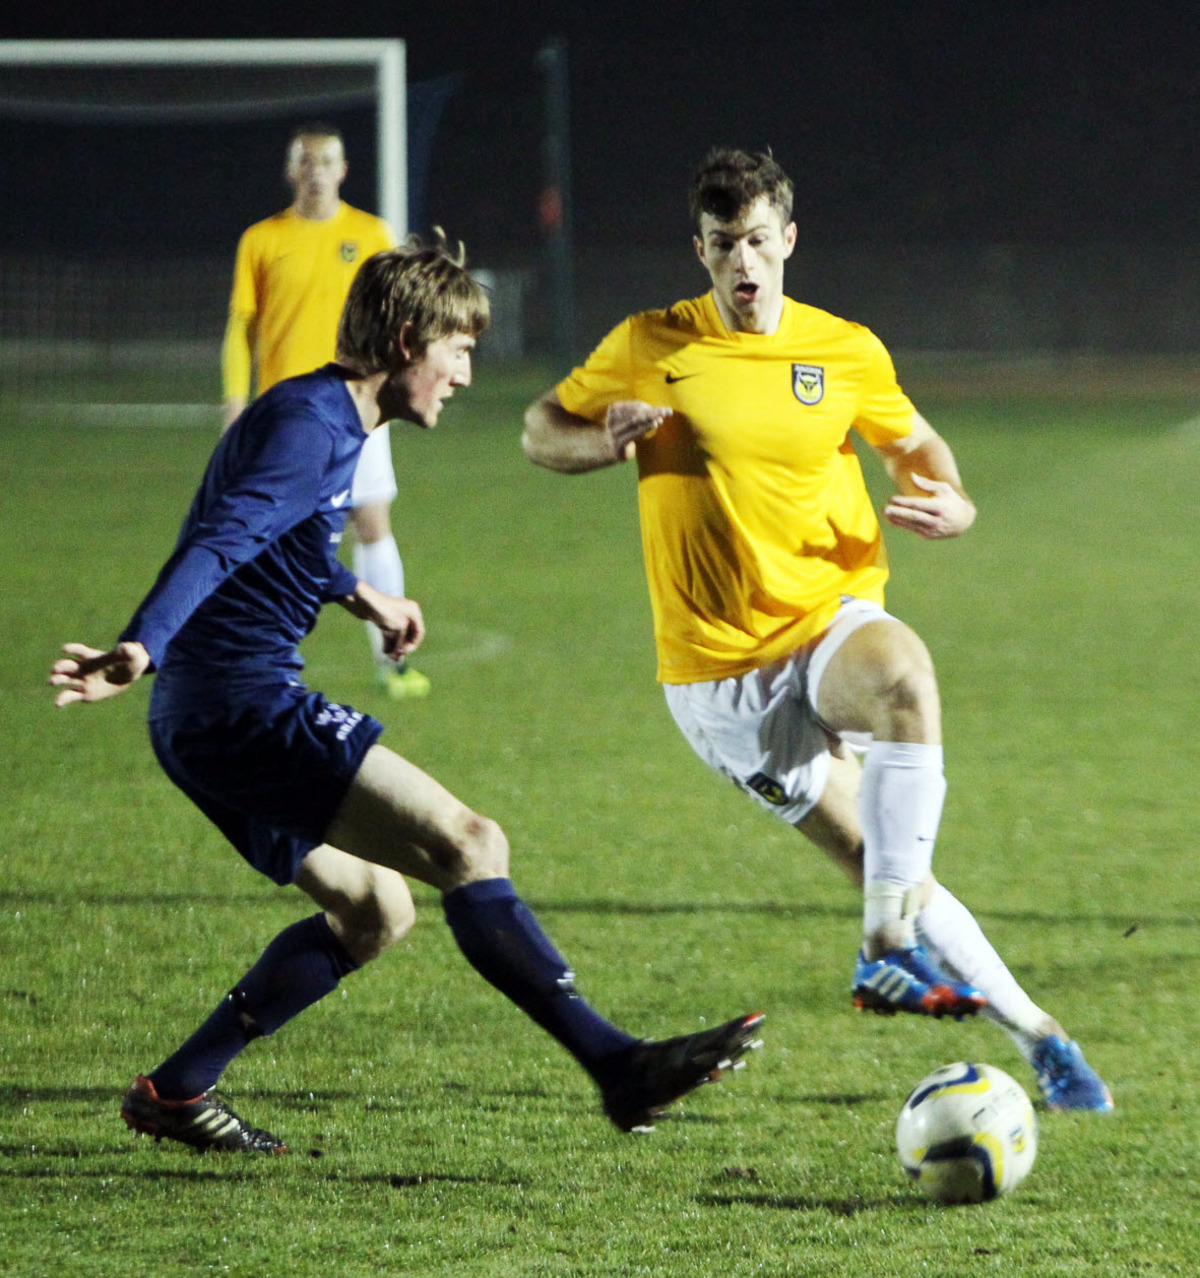 Jon Meades in action on his comeback for Oxford United's development squad tonight